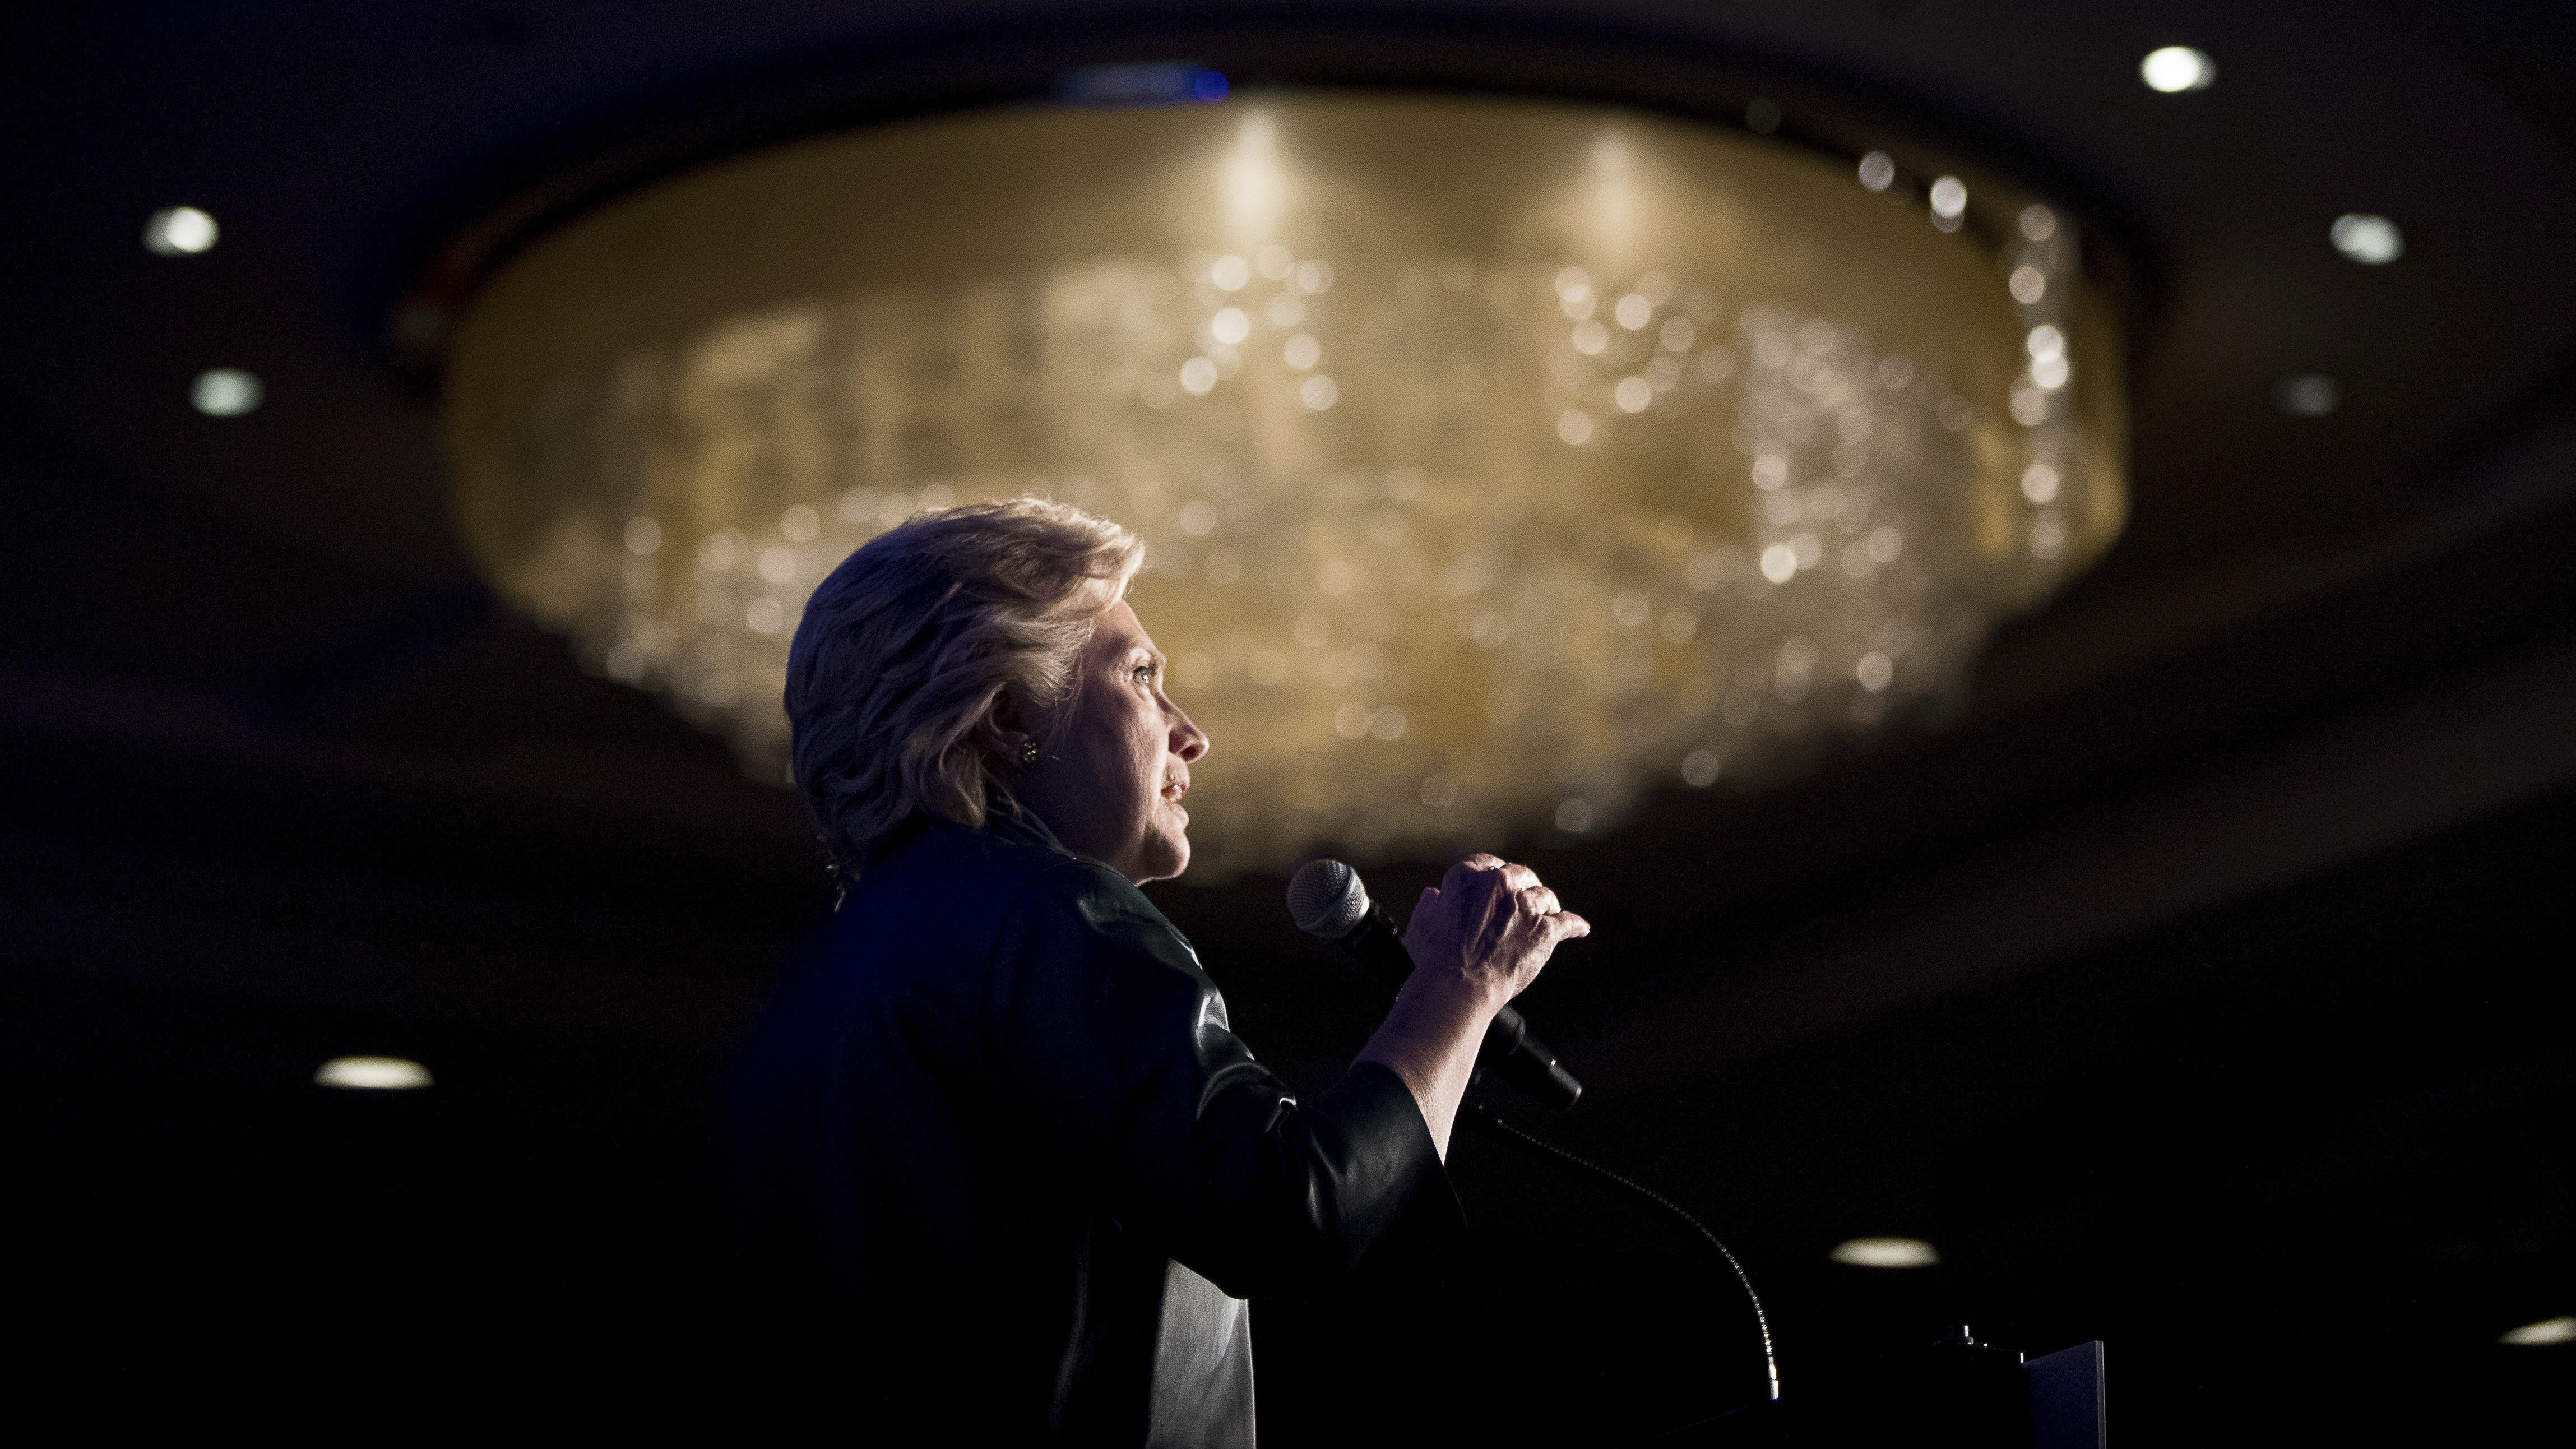 Democratic presidential candidate Hillary Clinton speaks at a fundraiser in Washington, D.C., on Oct. 5. Andrew Harnik/AP